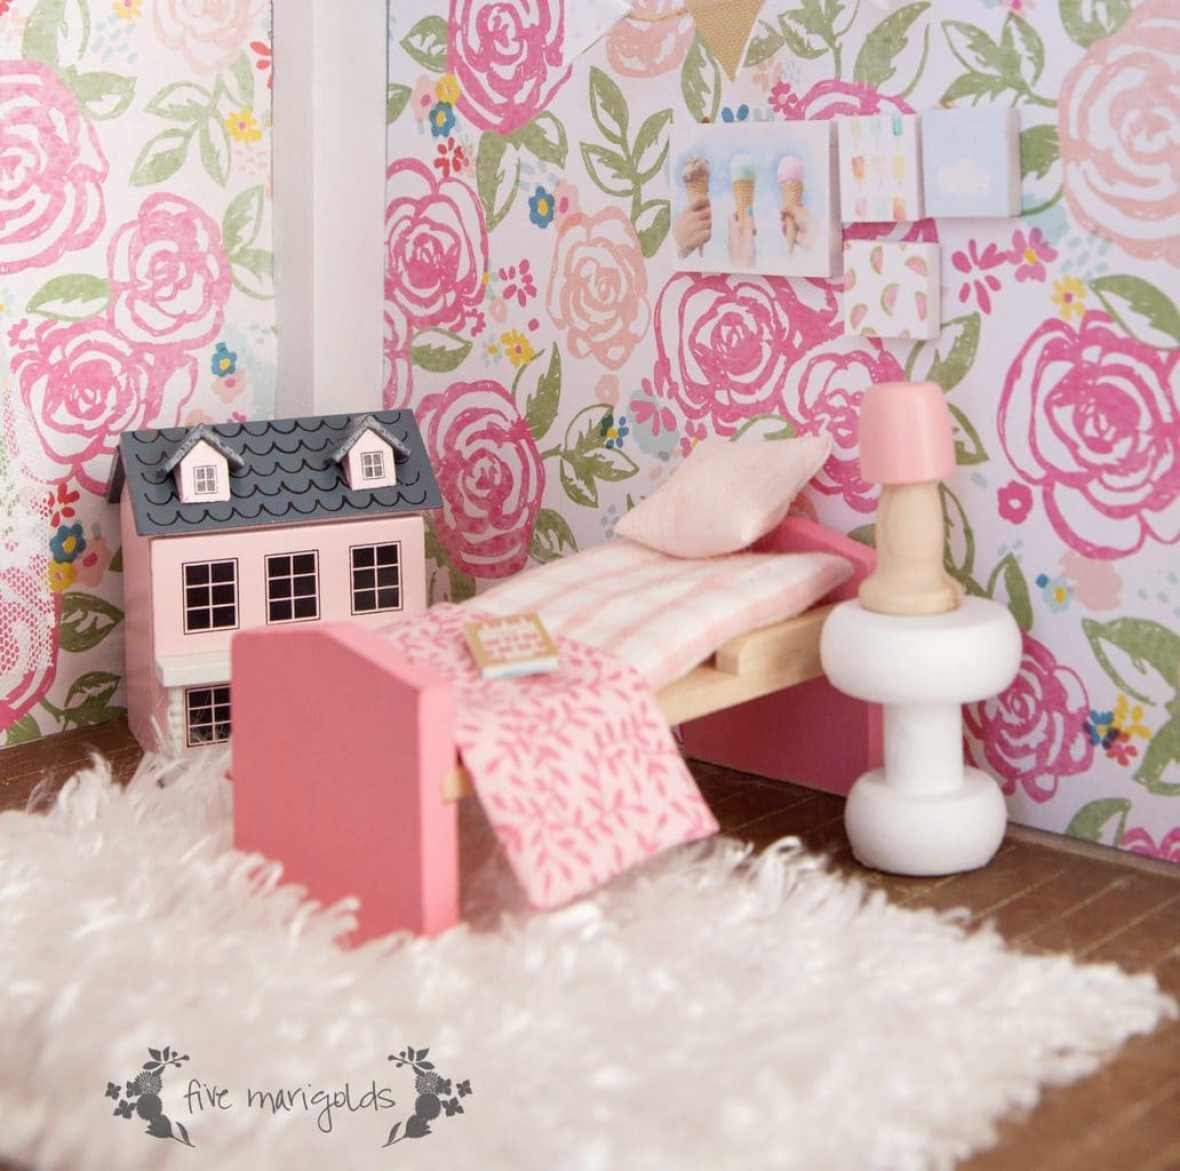 Vintage Dollhouse Remodel for less than $50 | www.fivemarigolds.com